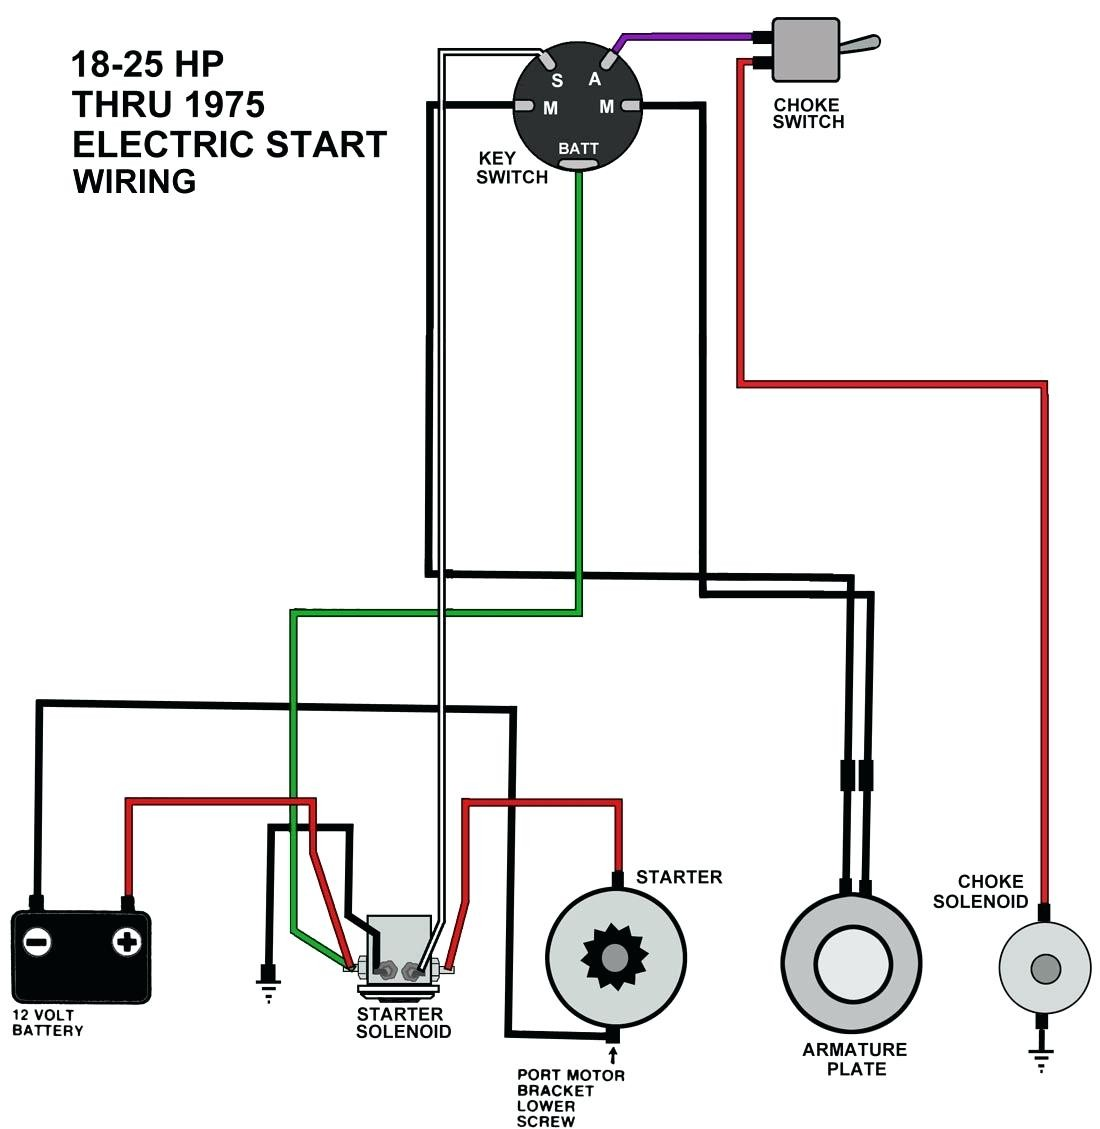 Omc Kill Switch Wiring Diagram - Wiring Diagram Table Omc Ignition Switch Wiring Diagram Kill on